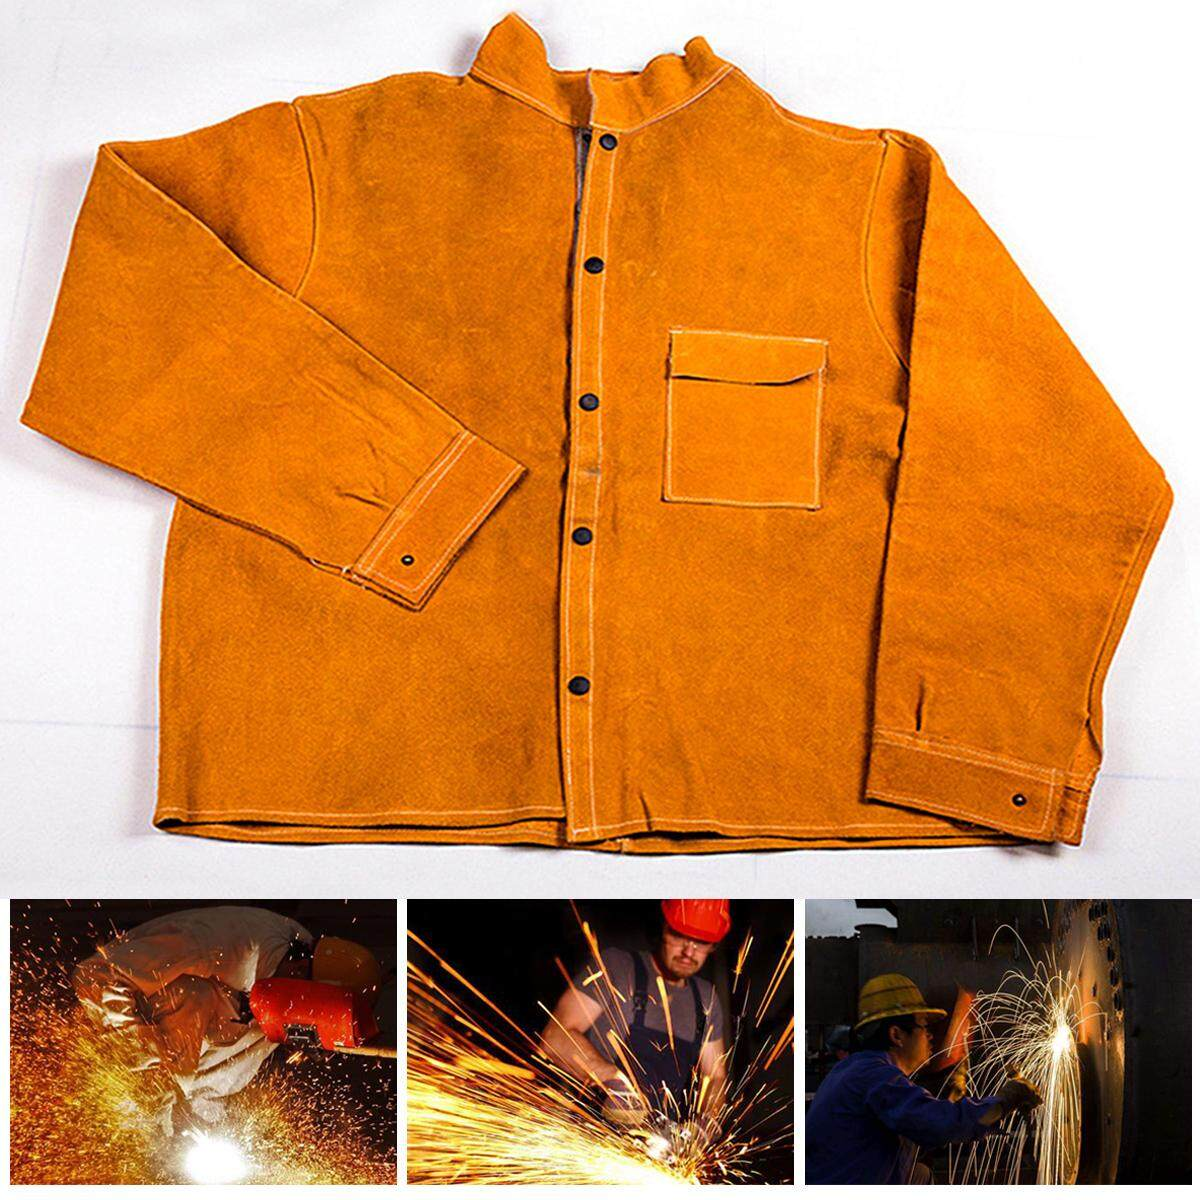 Welders Jacket Cow Leather Apron Protective Clothing Welding Safety Apparel New 3XL Size